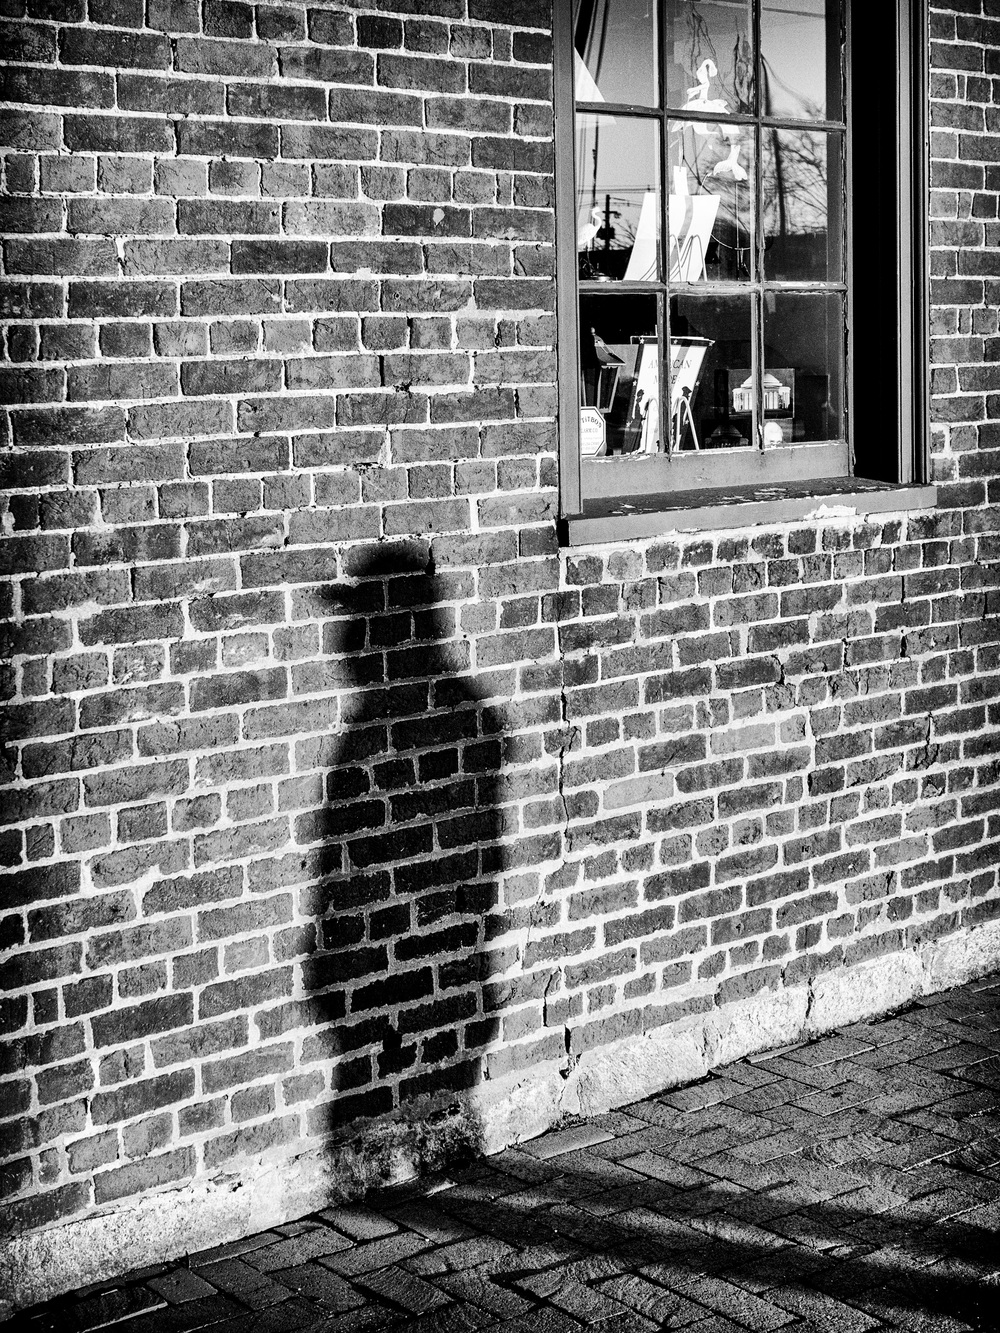 Shadow Man - Panasonic GH3, 25mm Summilux f/1.4 - ISO 800, f/4.0, 1/1000sec